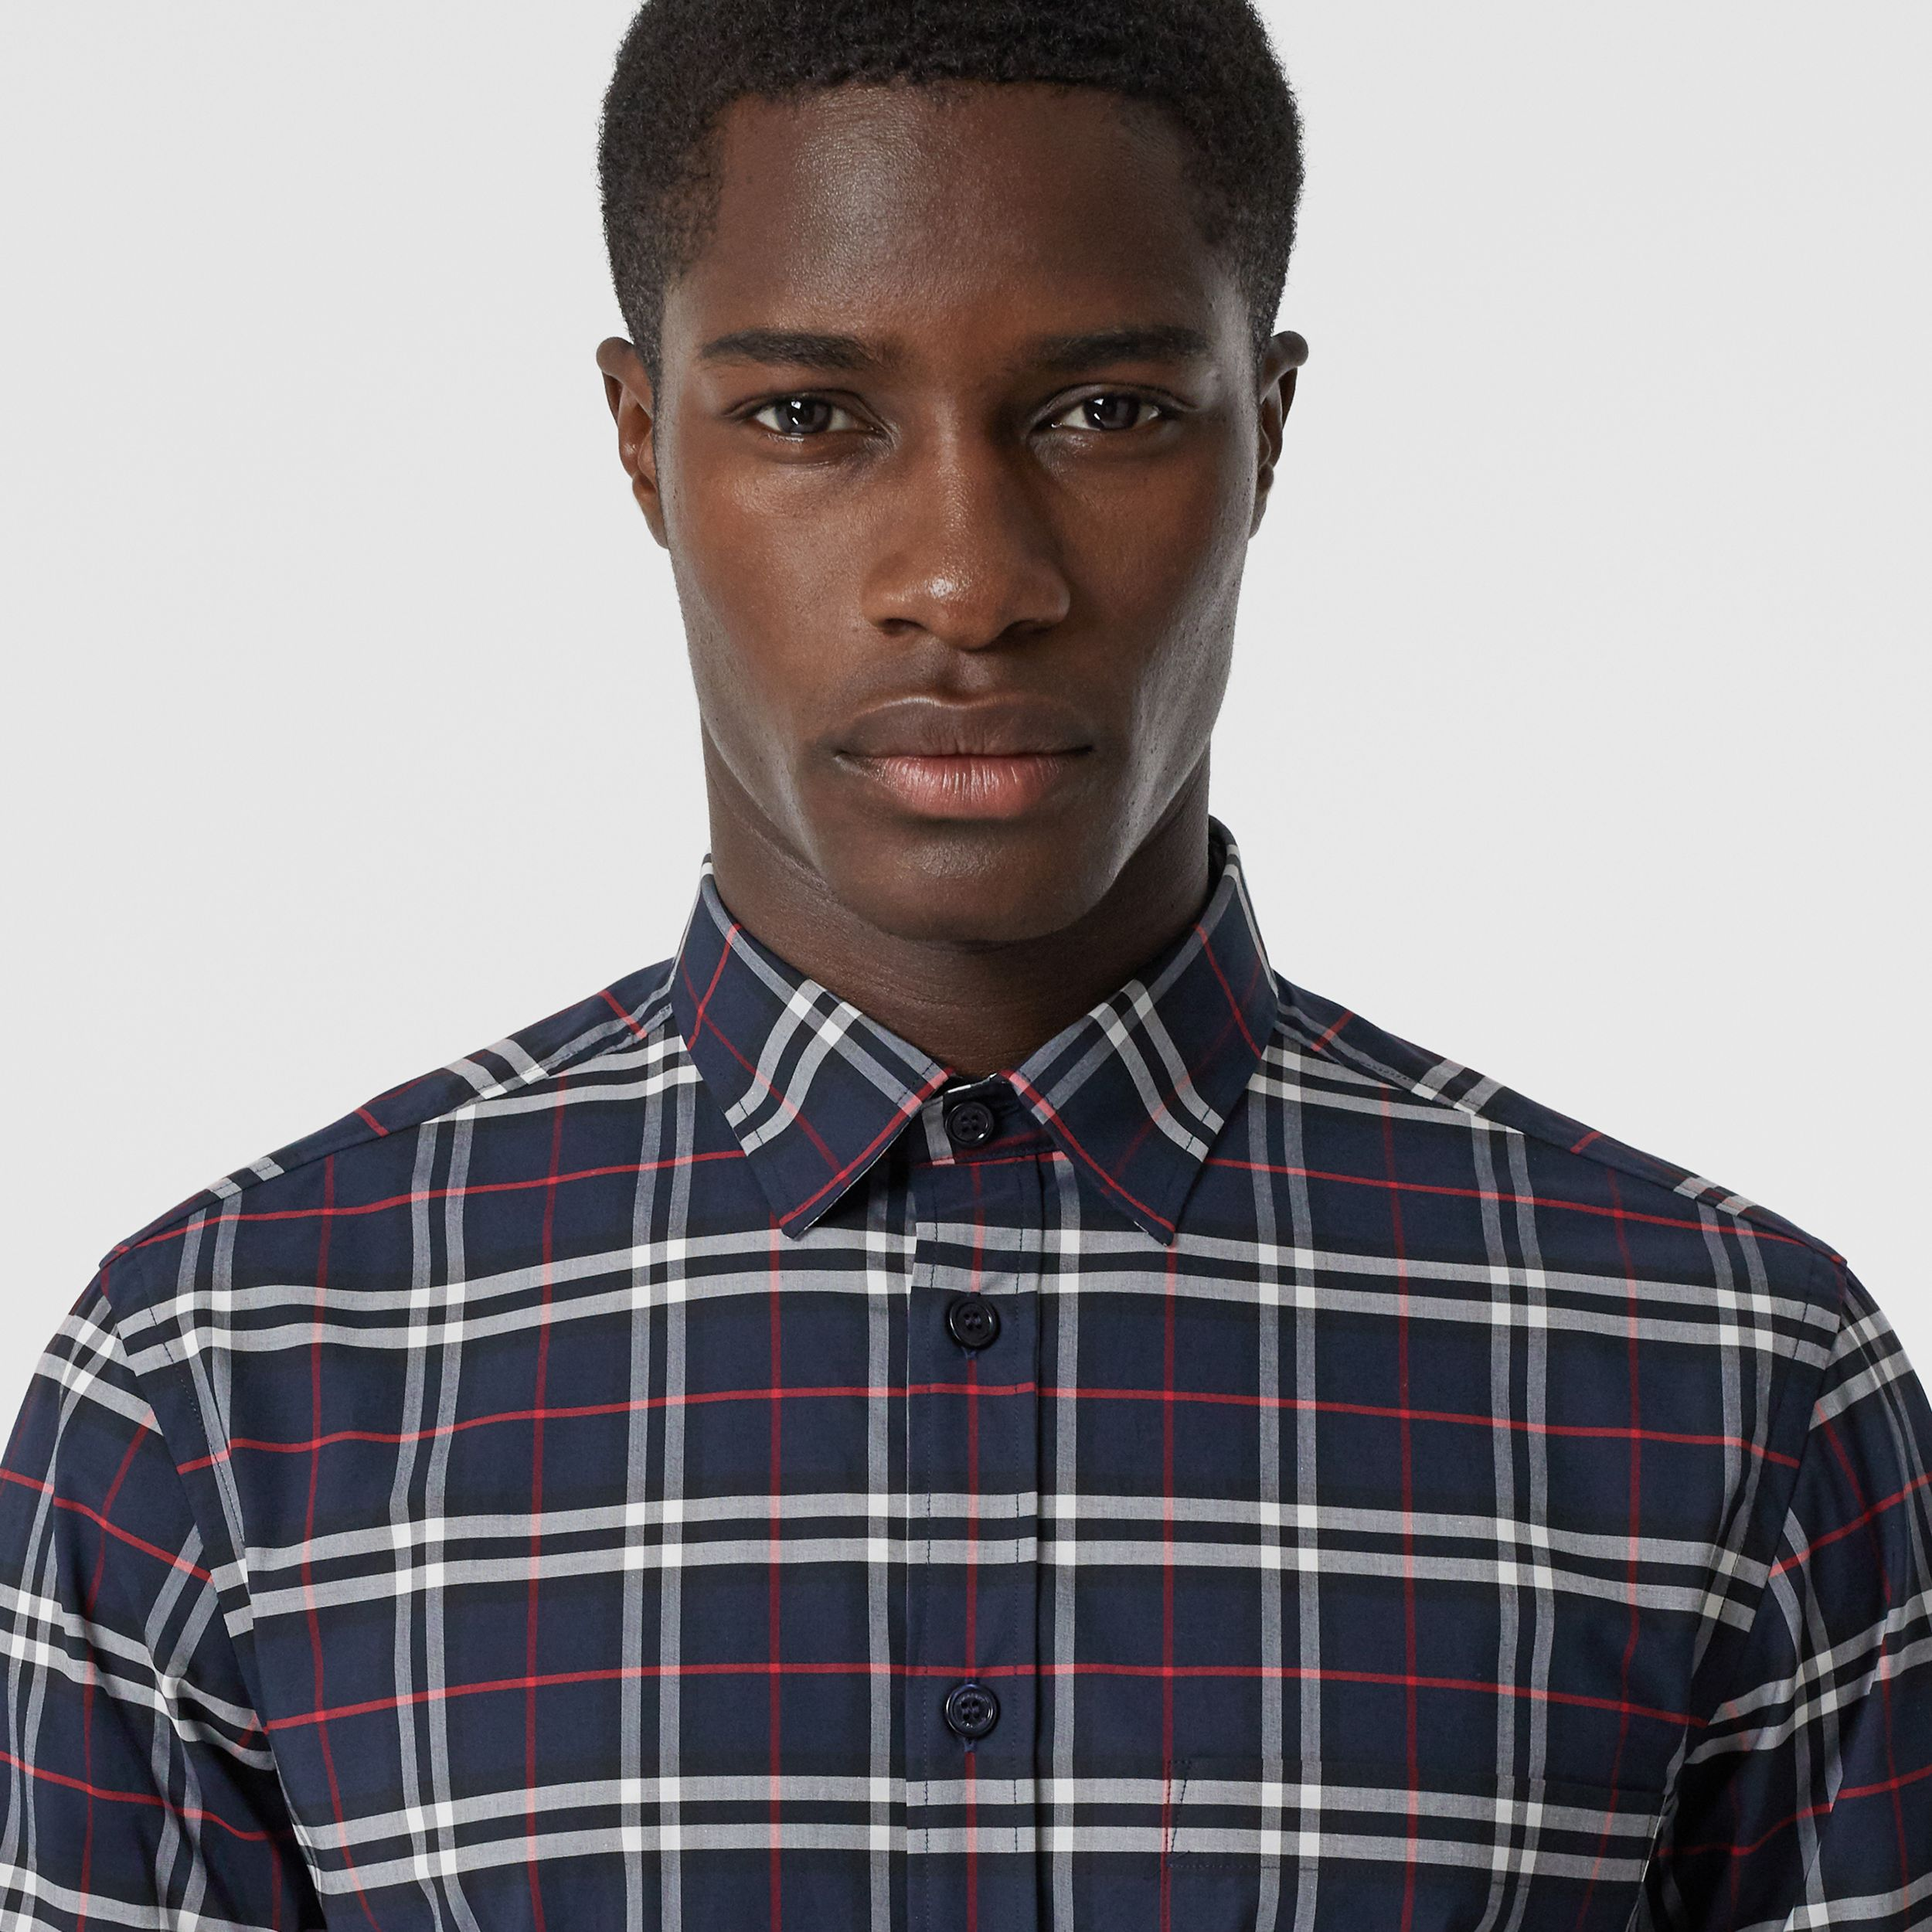 Small Scale Check Stretch Cotton Shirt in Navy - Men | Burberry - 2